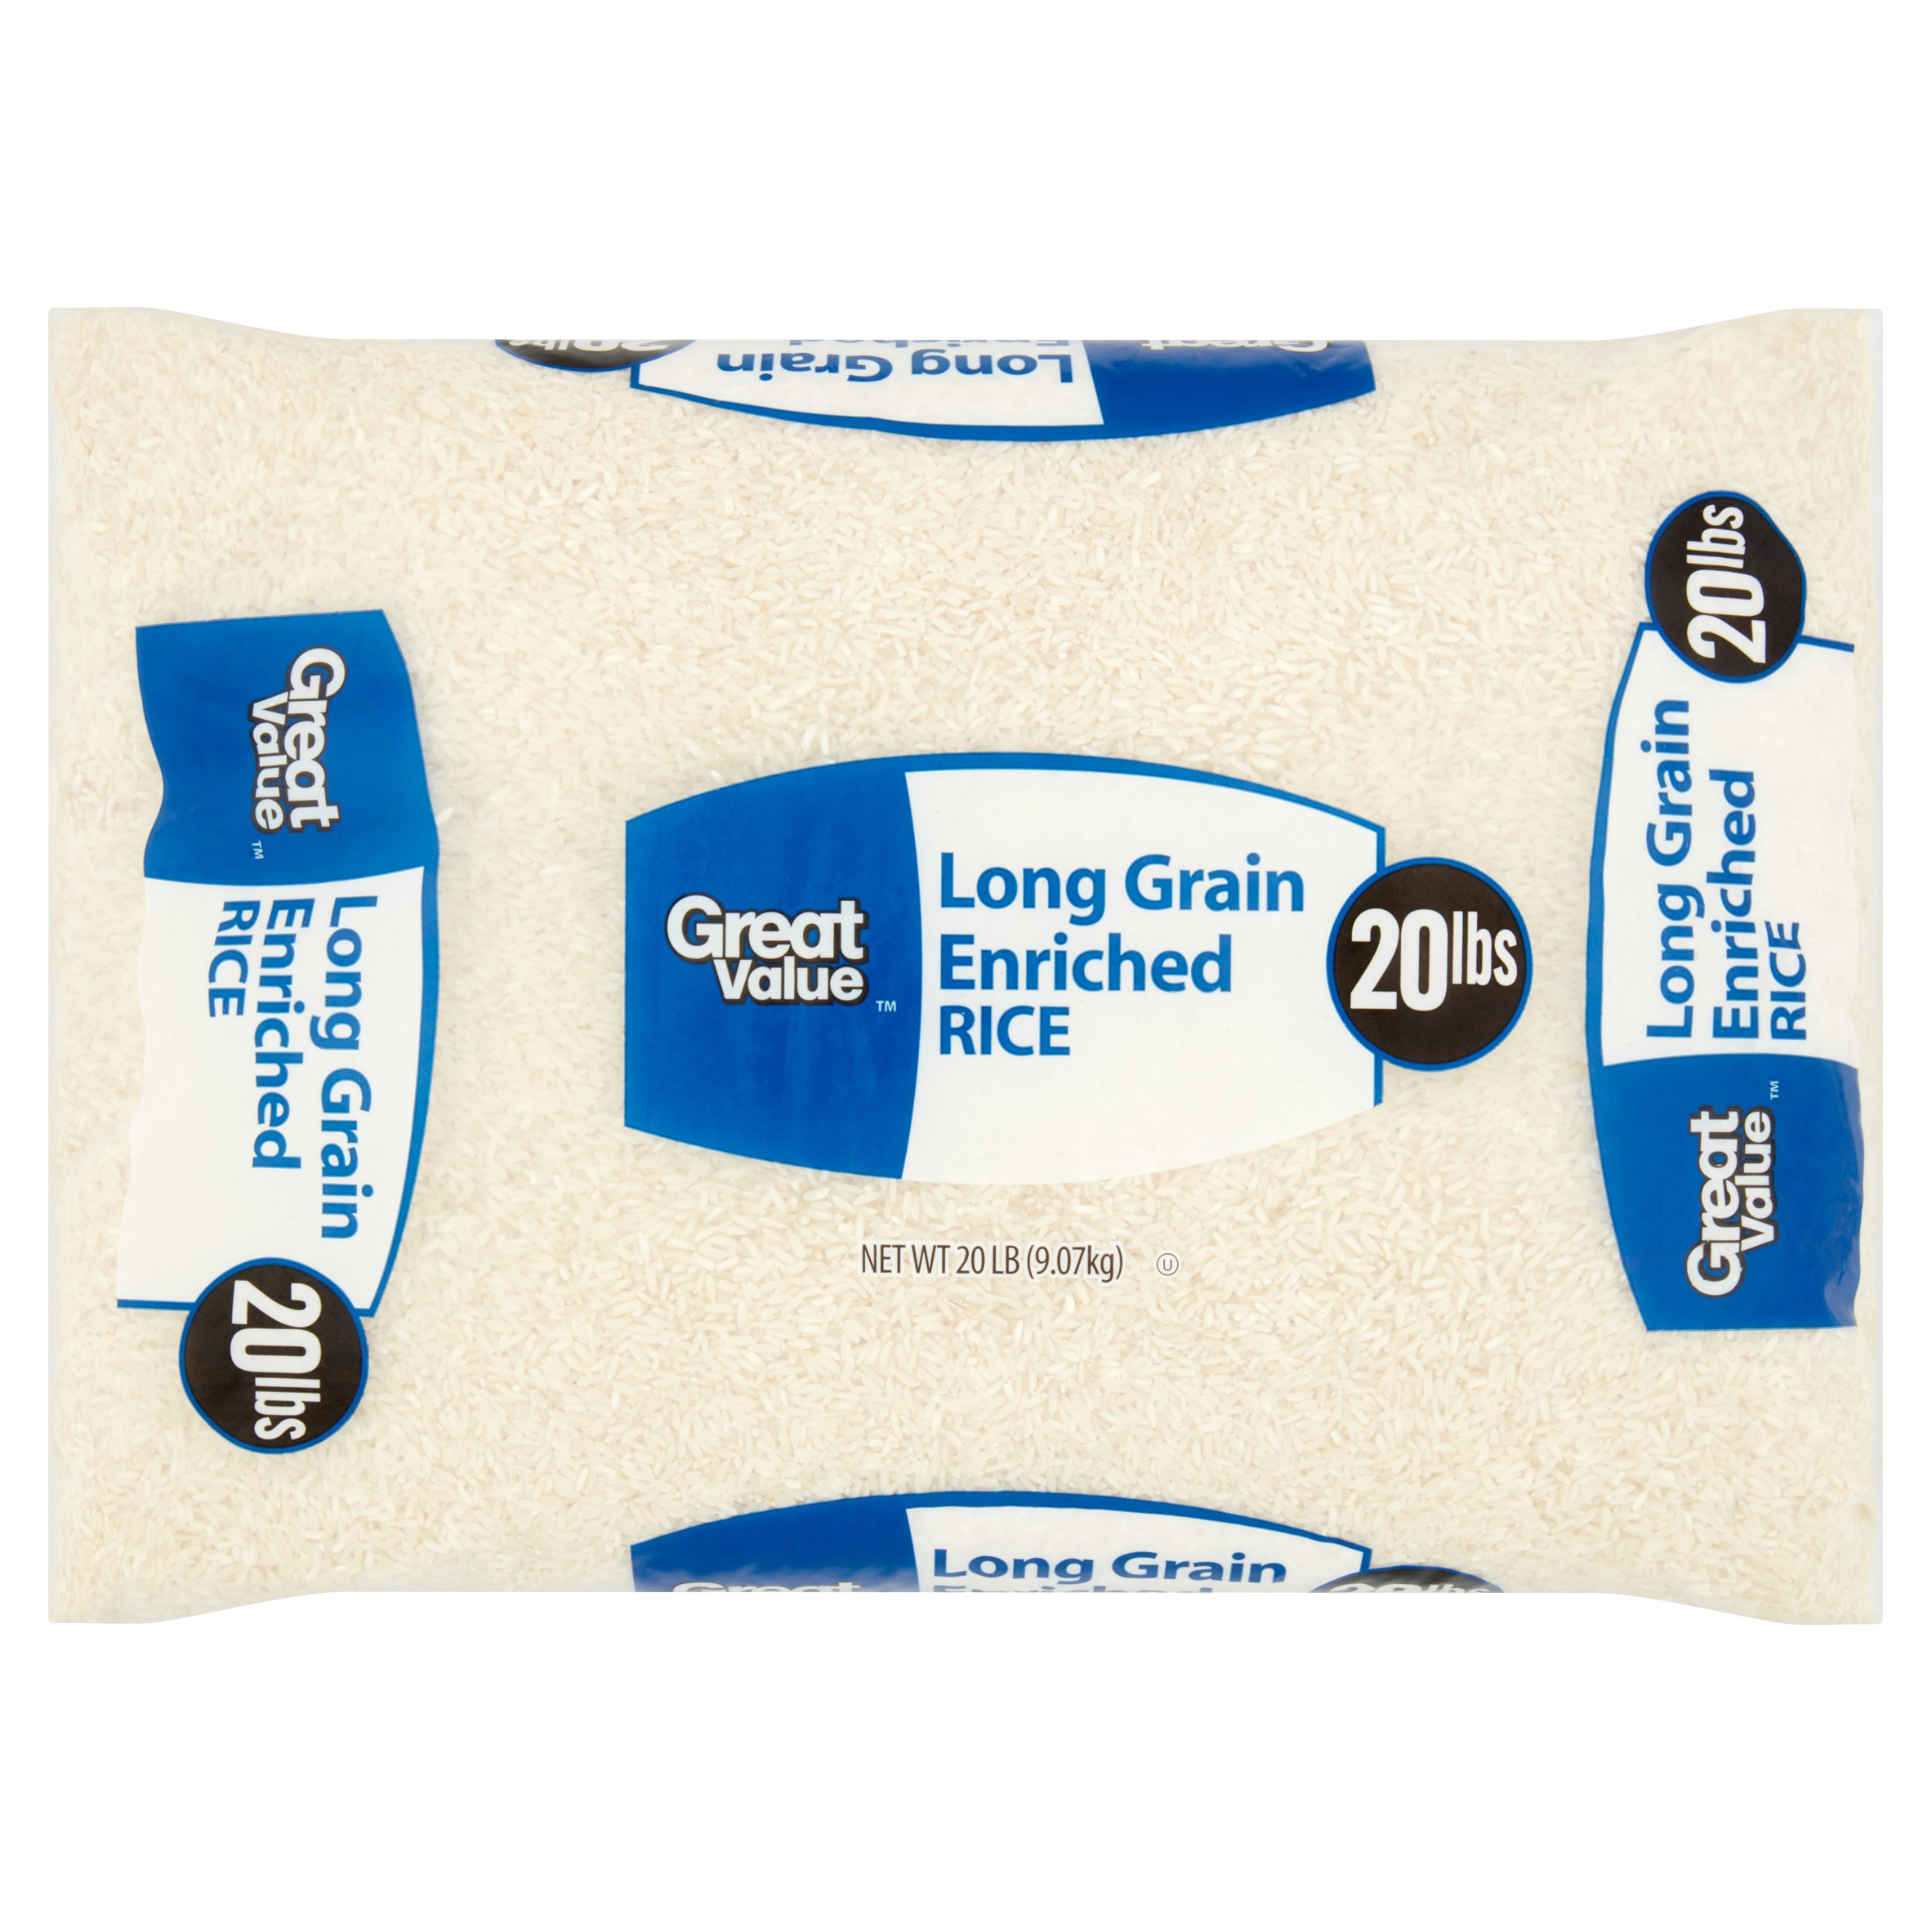 Great Value Long Grain Enriched Rice, 20 lb